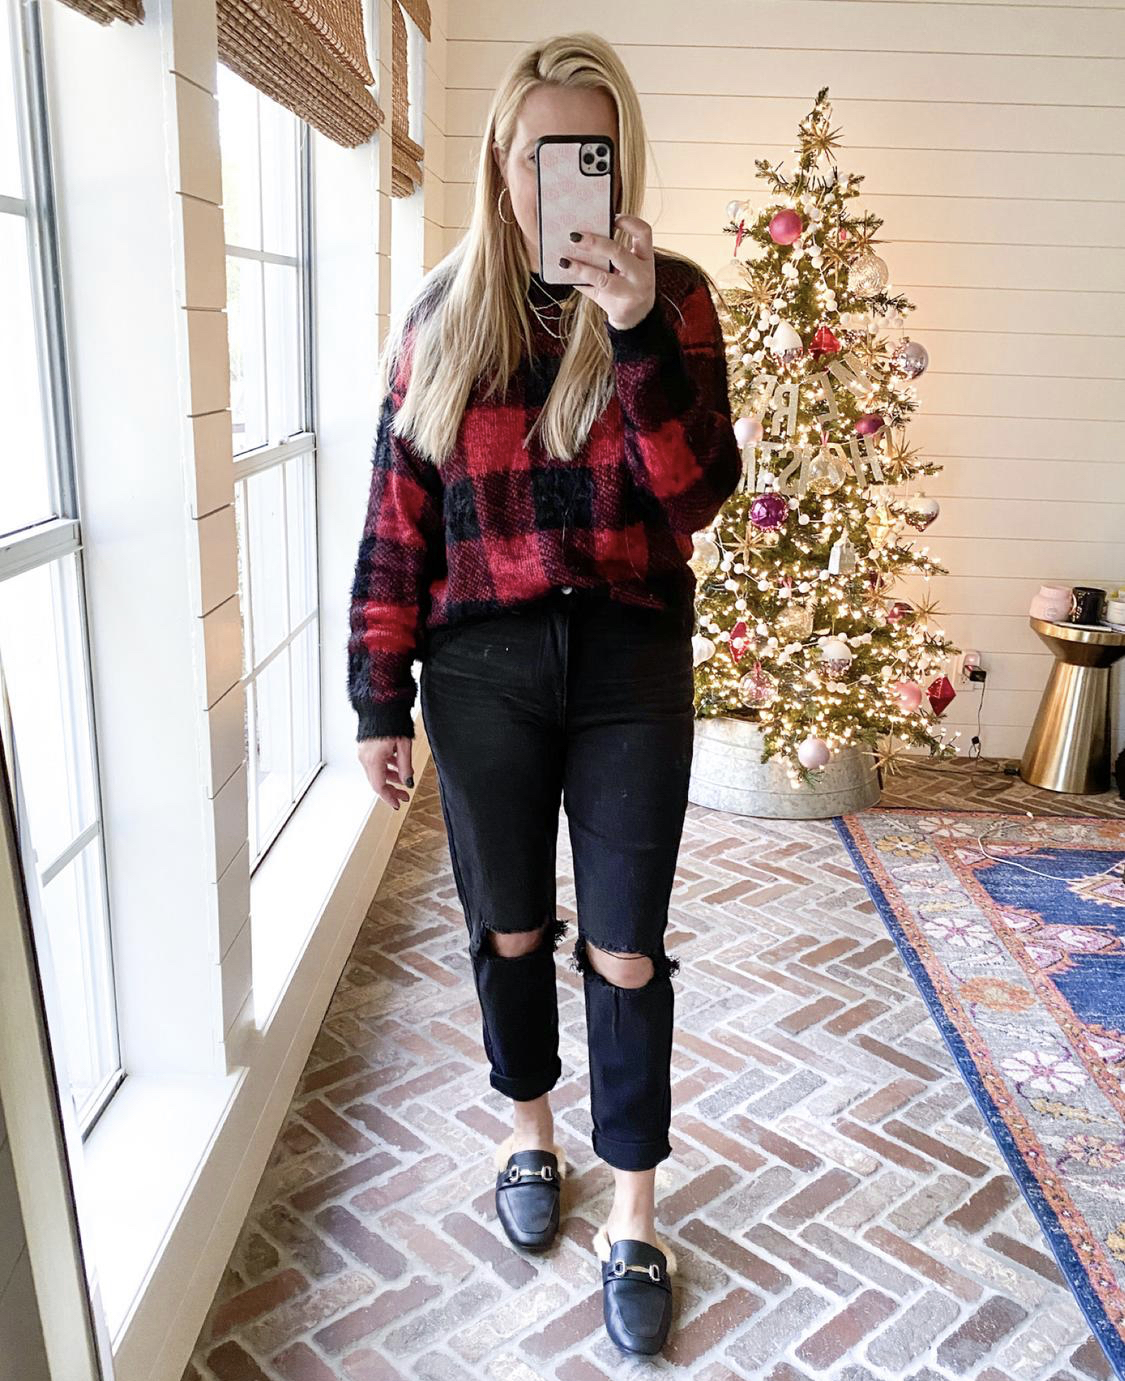 December Outfits by popular Houston fashion blog, Fancy Ashley: image of a woman standing in front of a Christmas tree decorated with pink, white and silver ornaments and wearing a red and black buffalo plaid shirt, black distressed jeans, and a black faux fur lined slide mules.